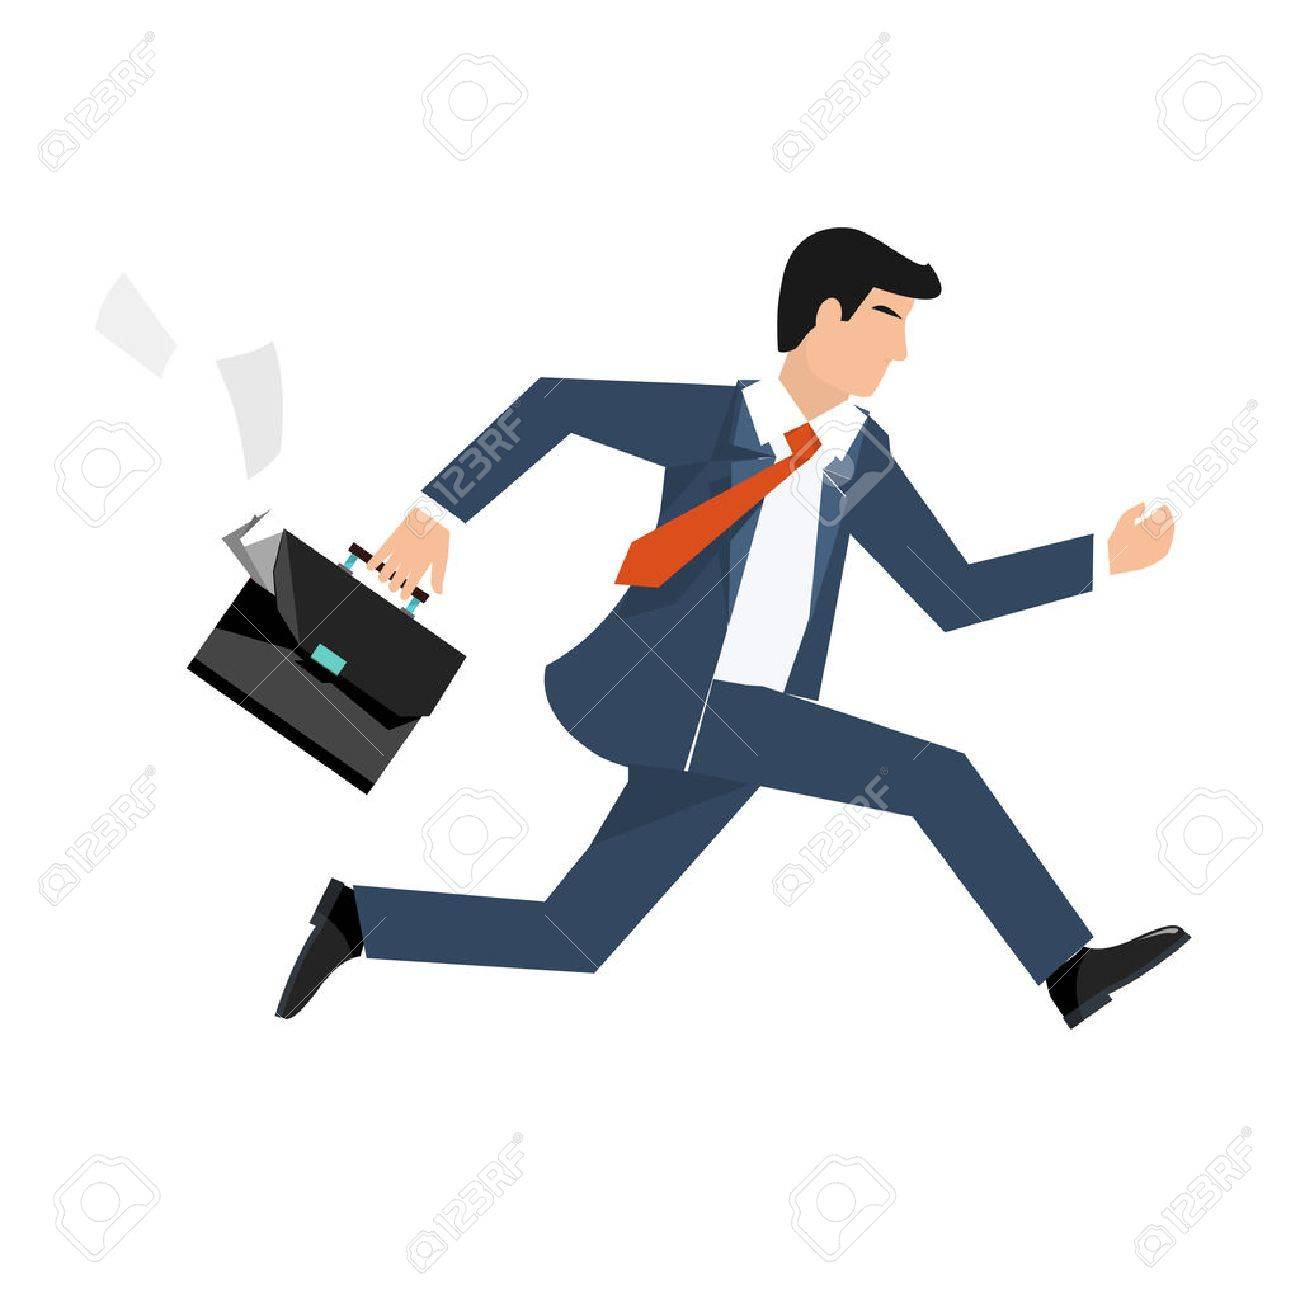 Flat style vector illustration of a businessman running, business concept - 58664559